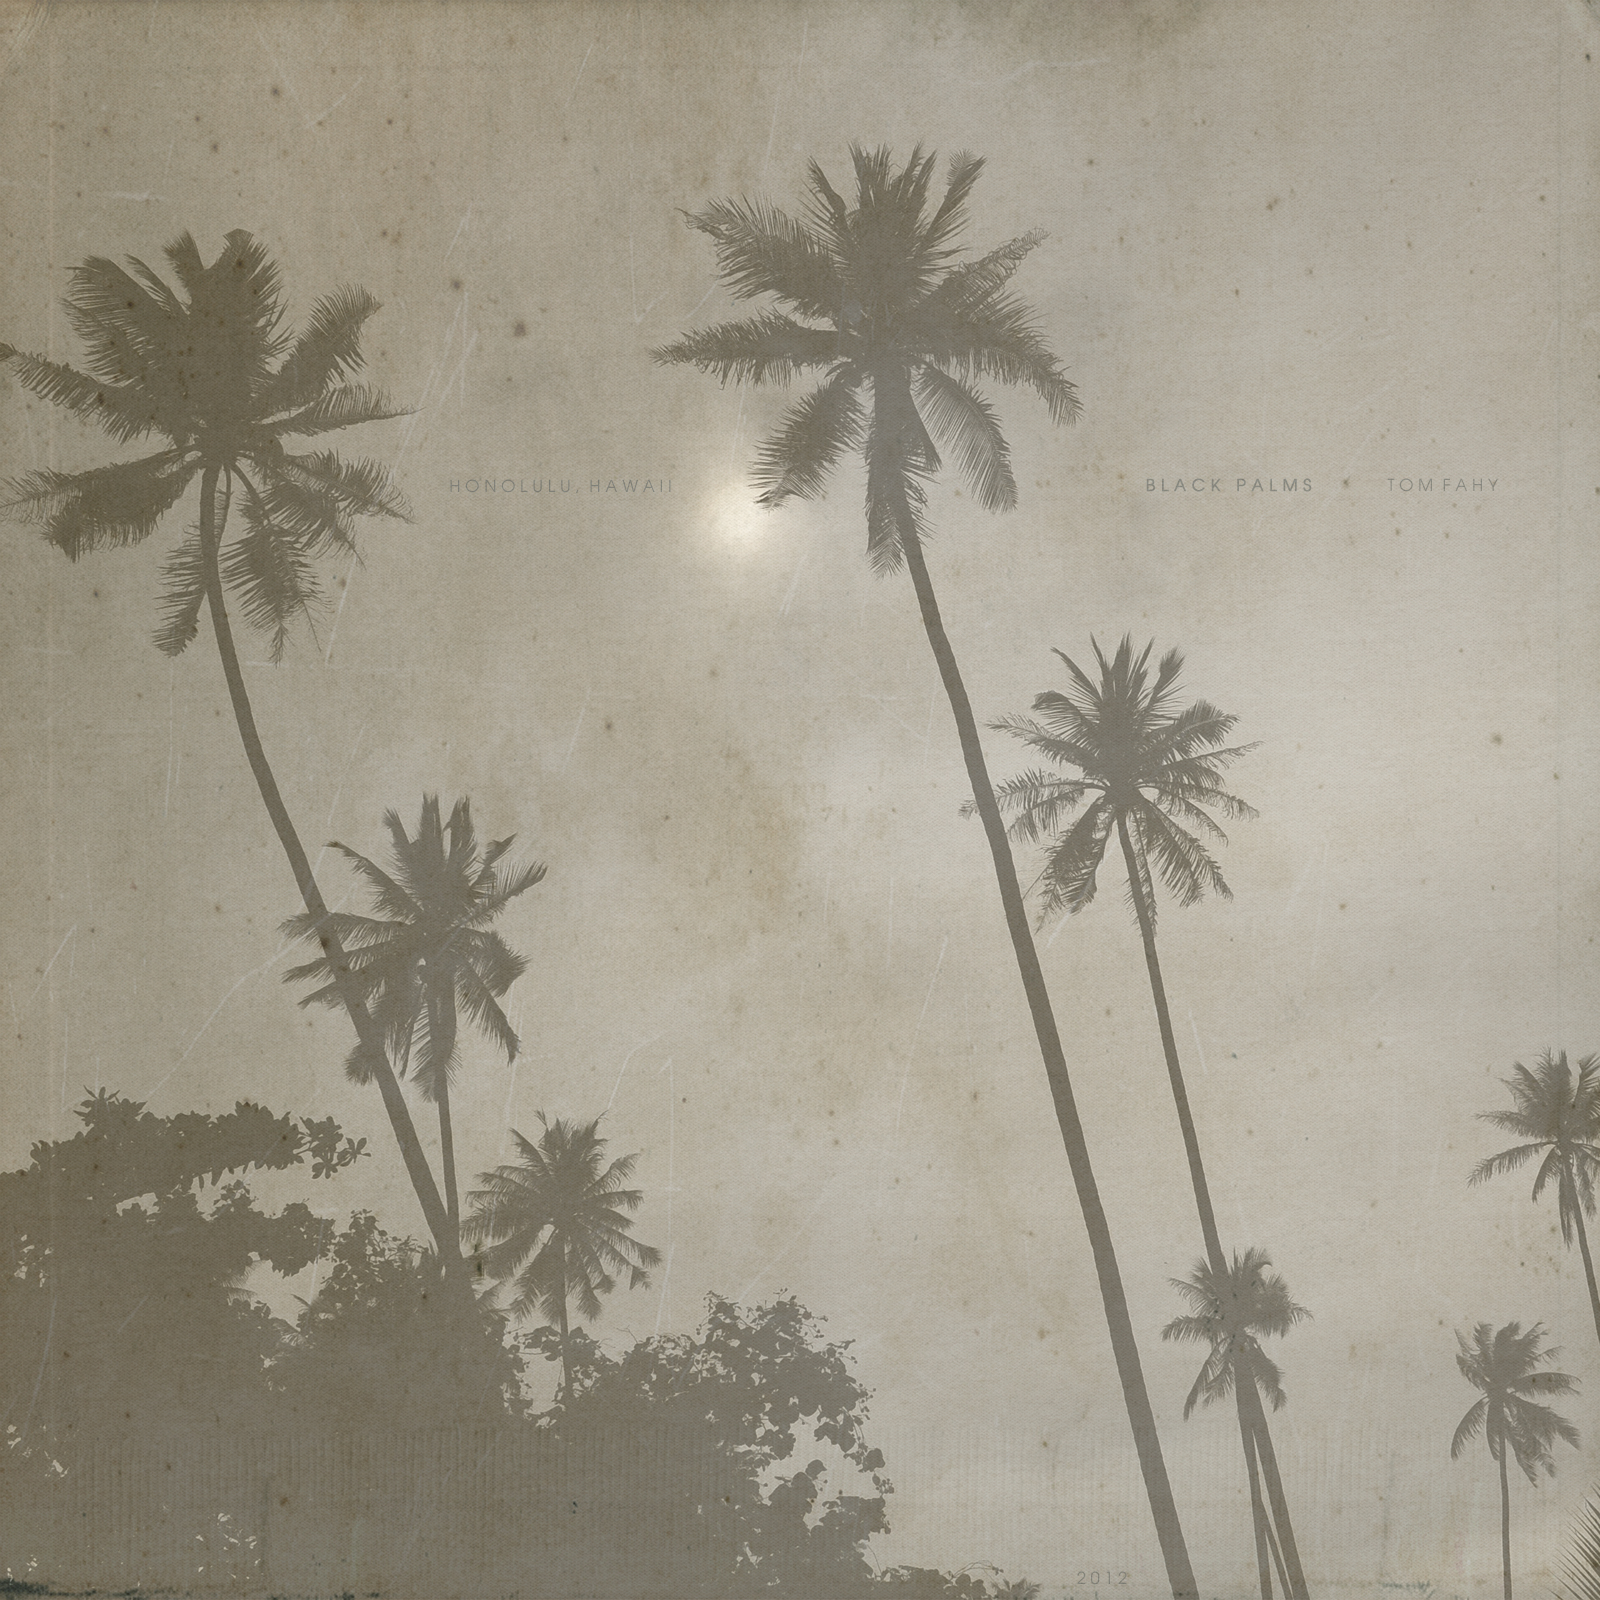 Black Palms, by Tom Fahy (2012)